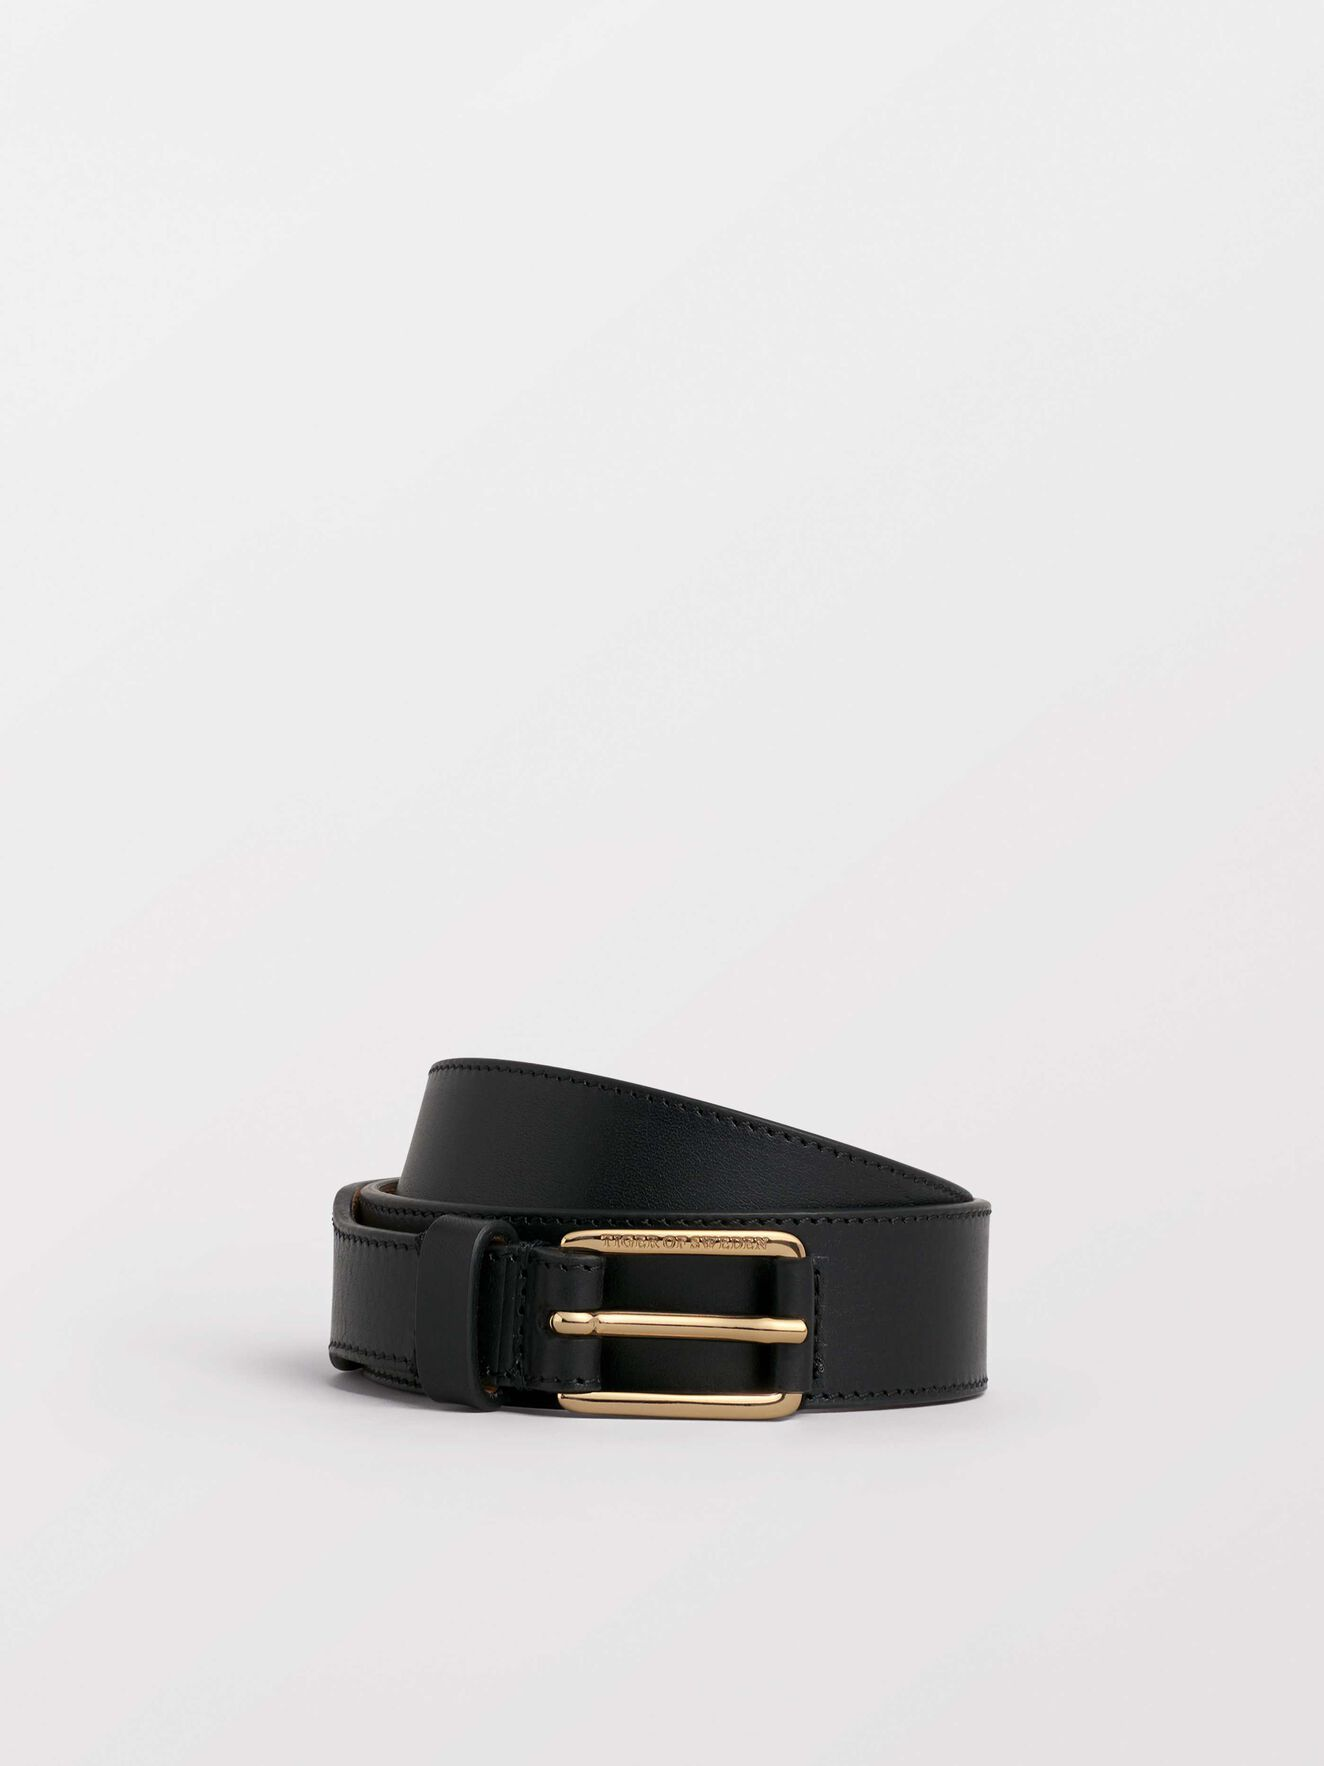 Erythro Belt in Black from Tiger of Sweden